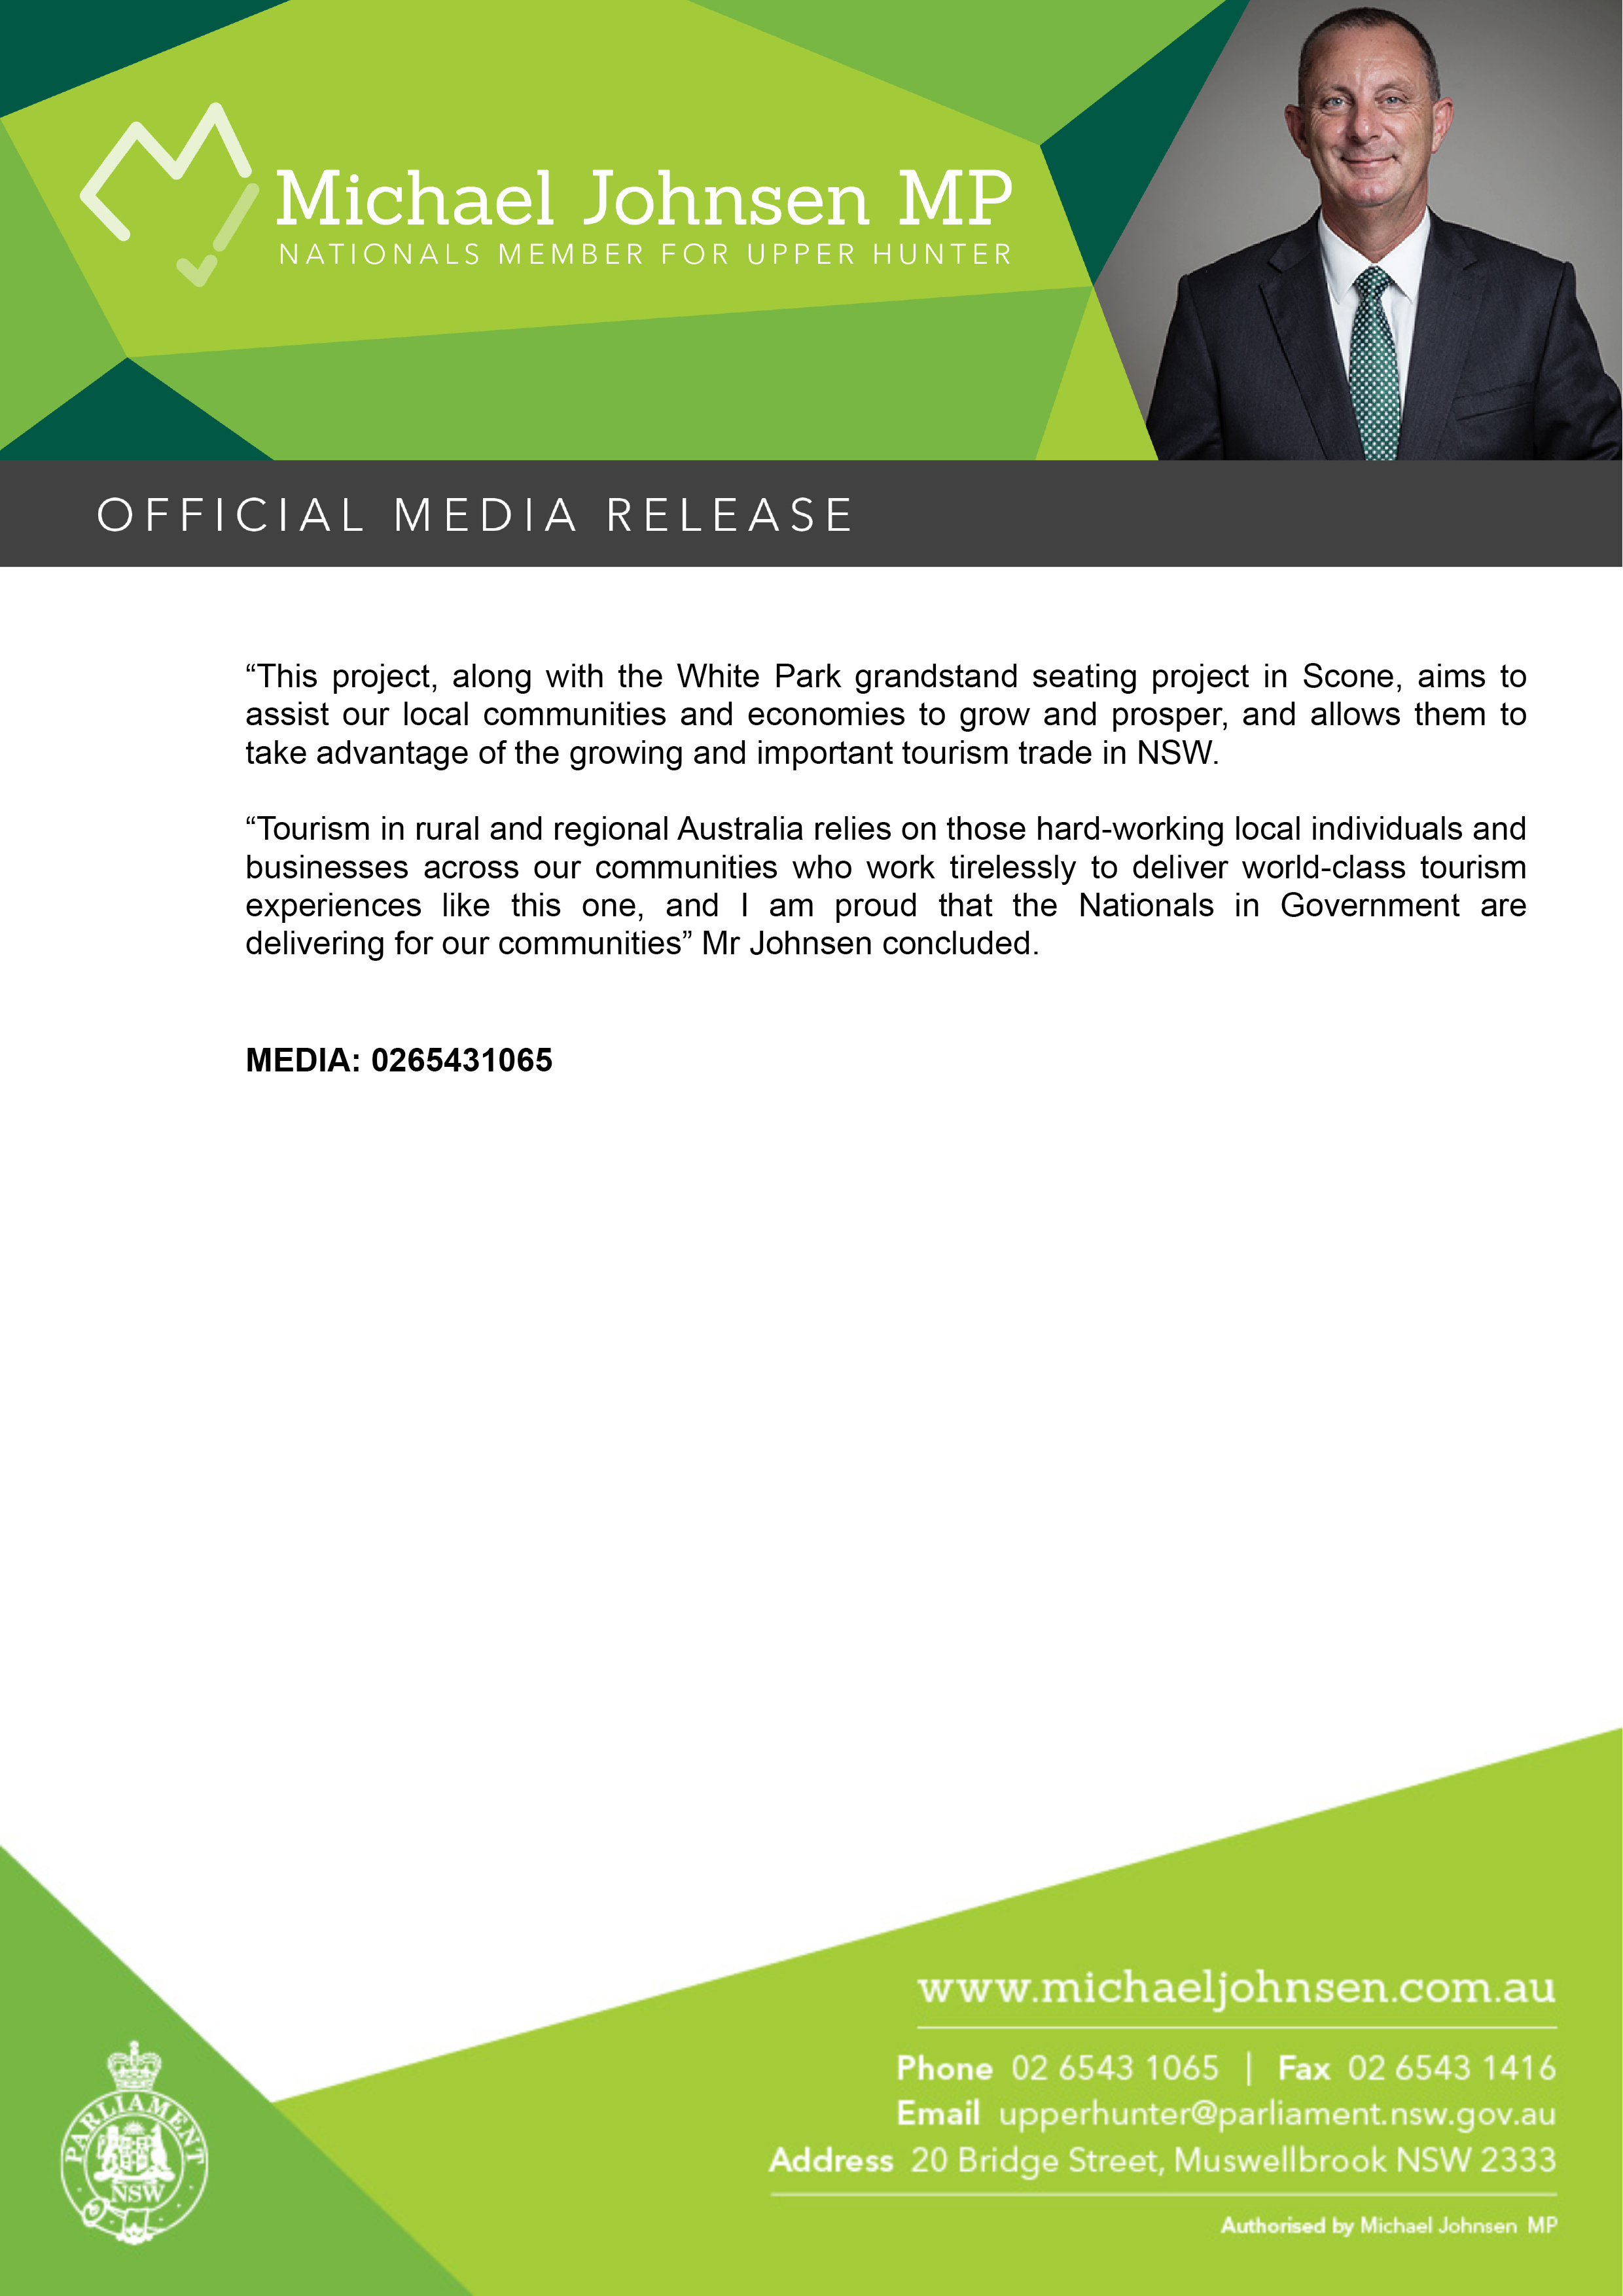 Michael Johnsen Media Release -$171,400 FOR VISITOR CENTRE AT SCONE AIRPORT2.jpg